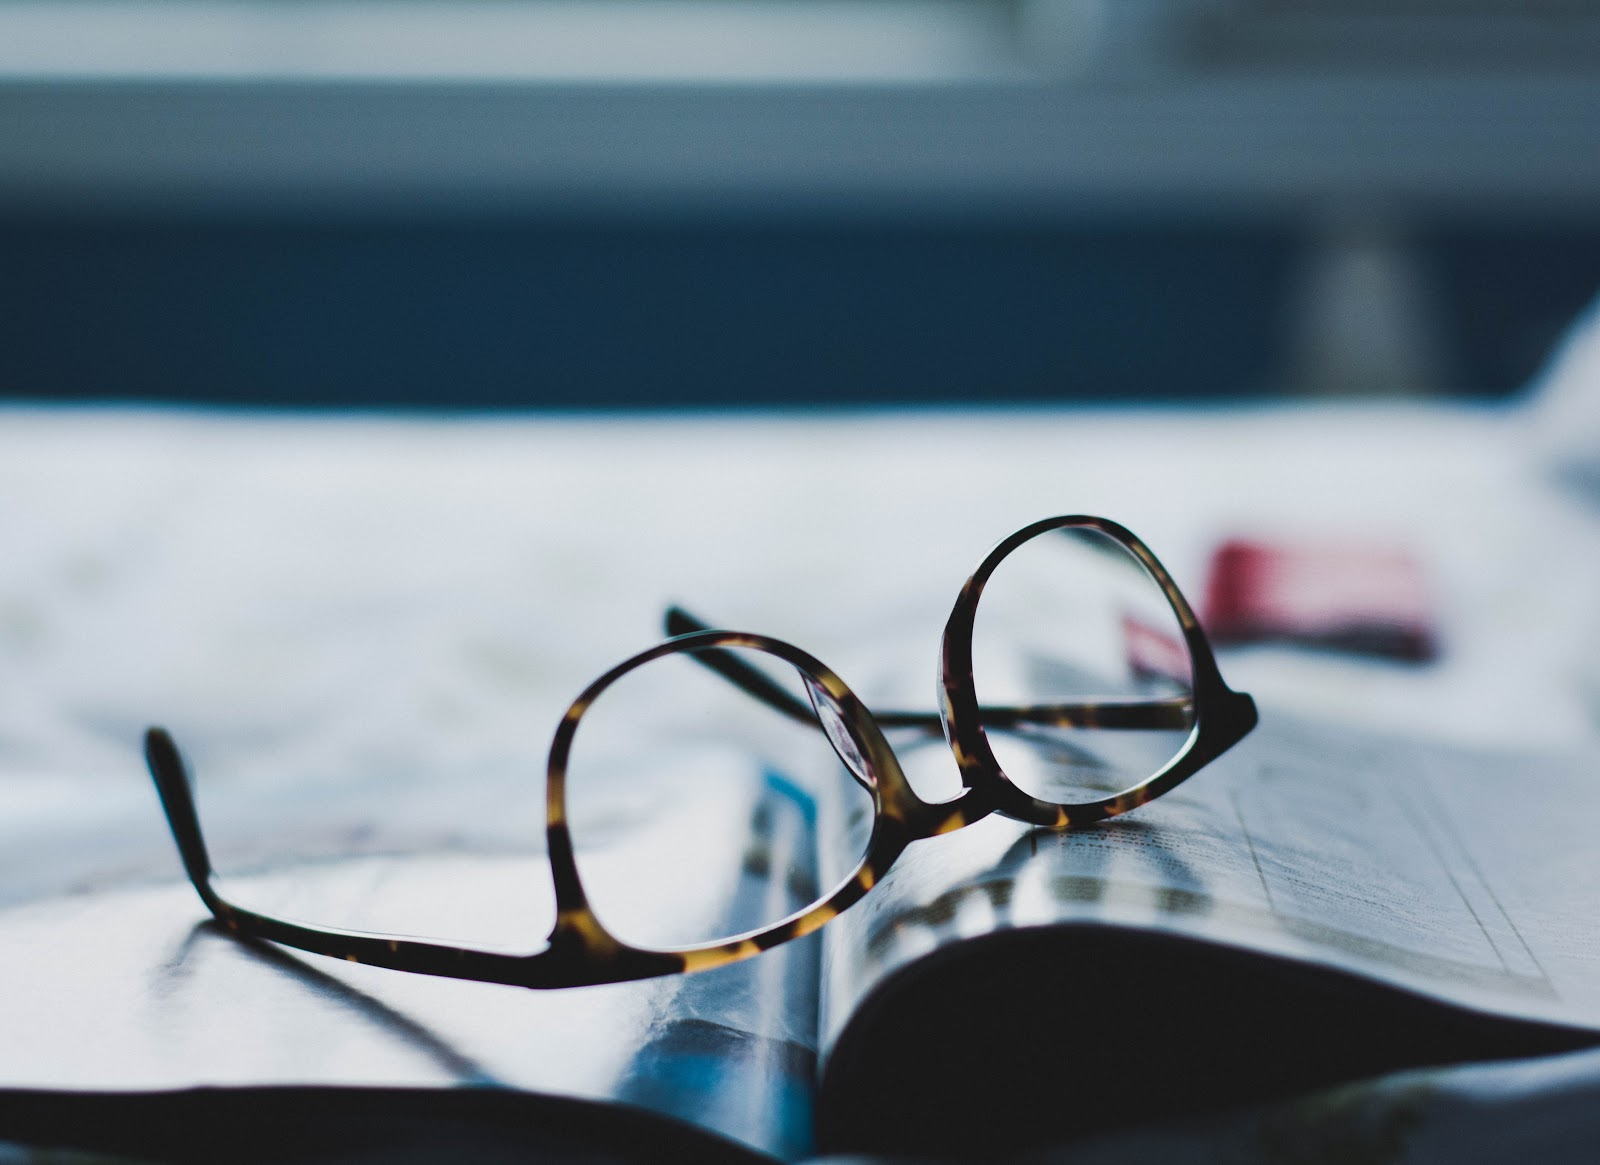 Pair of glasses on an open magazine